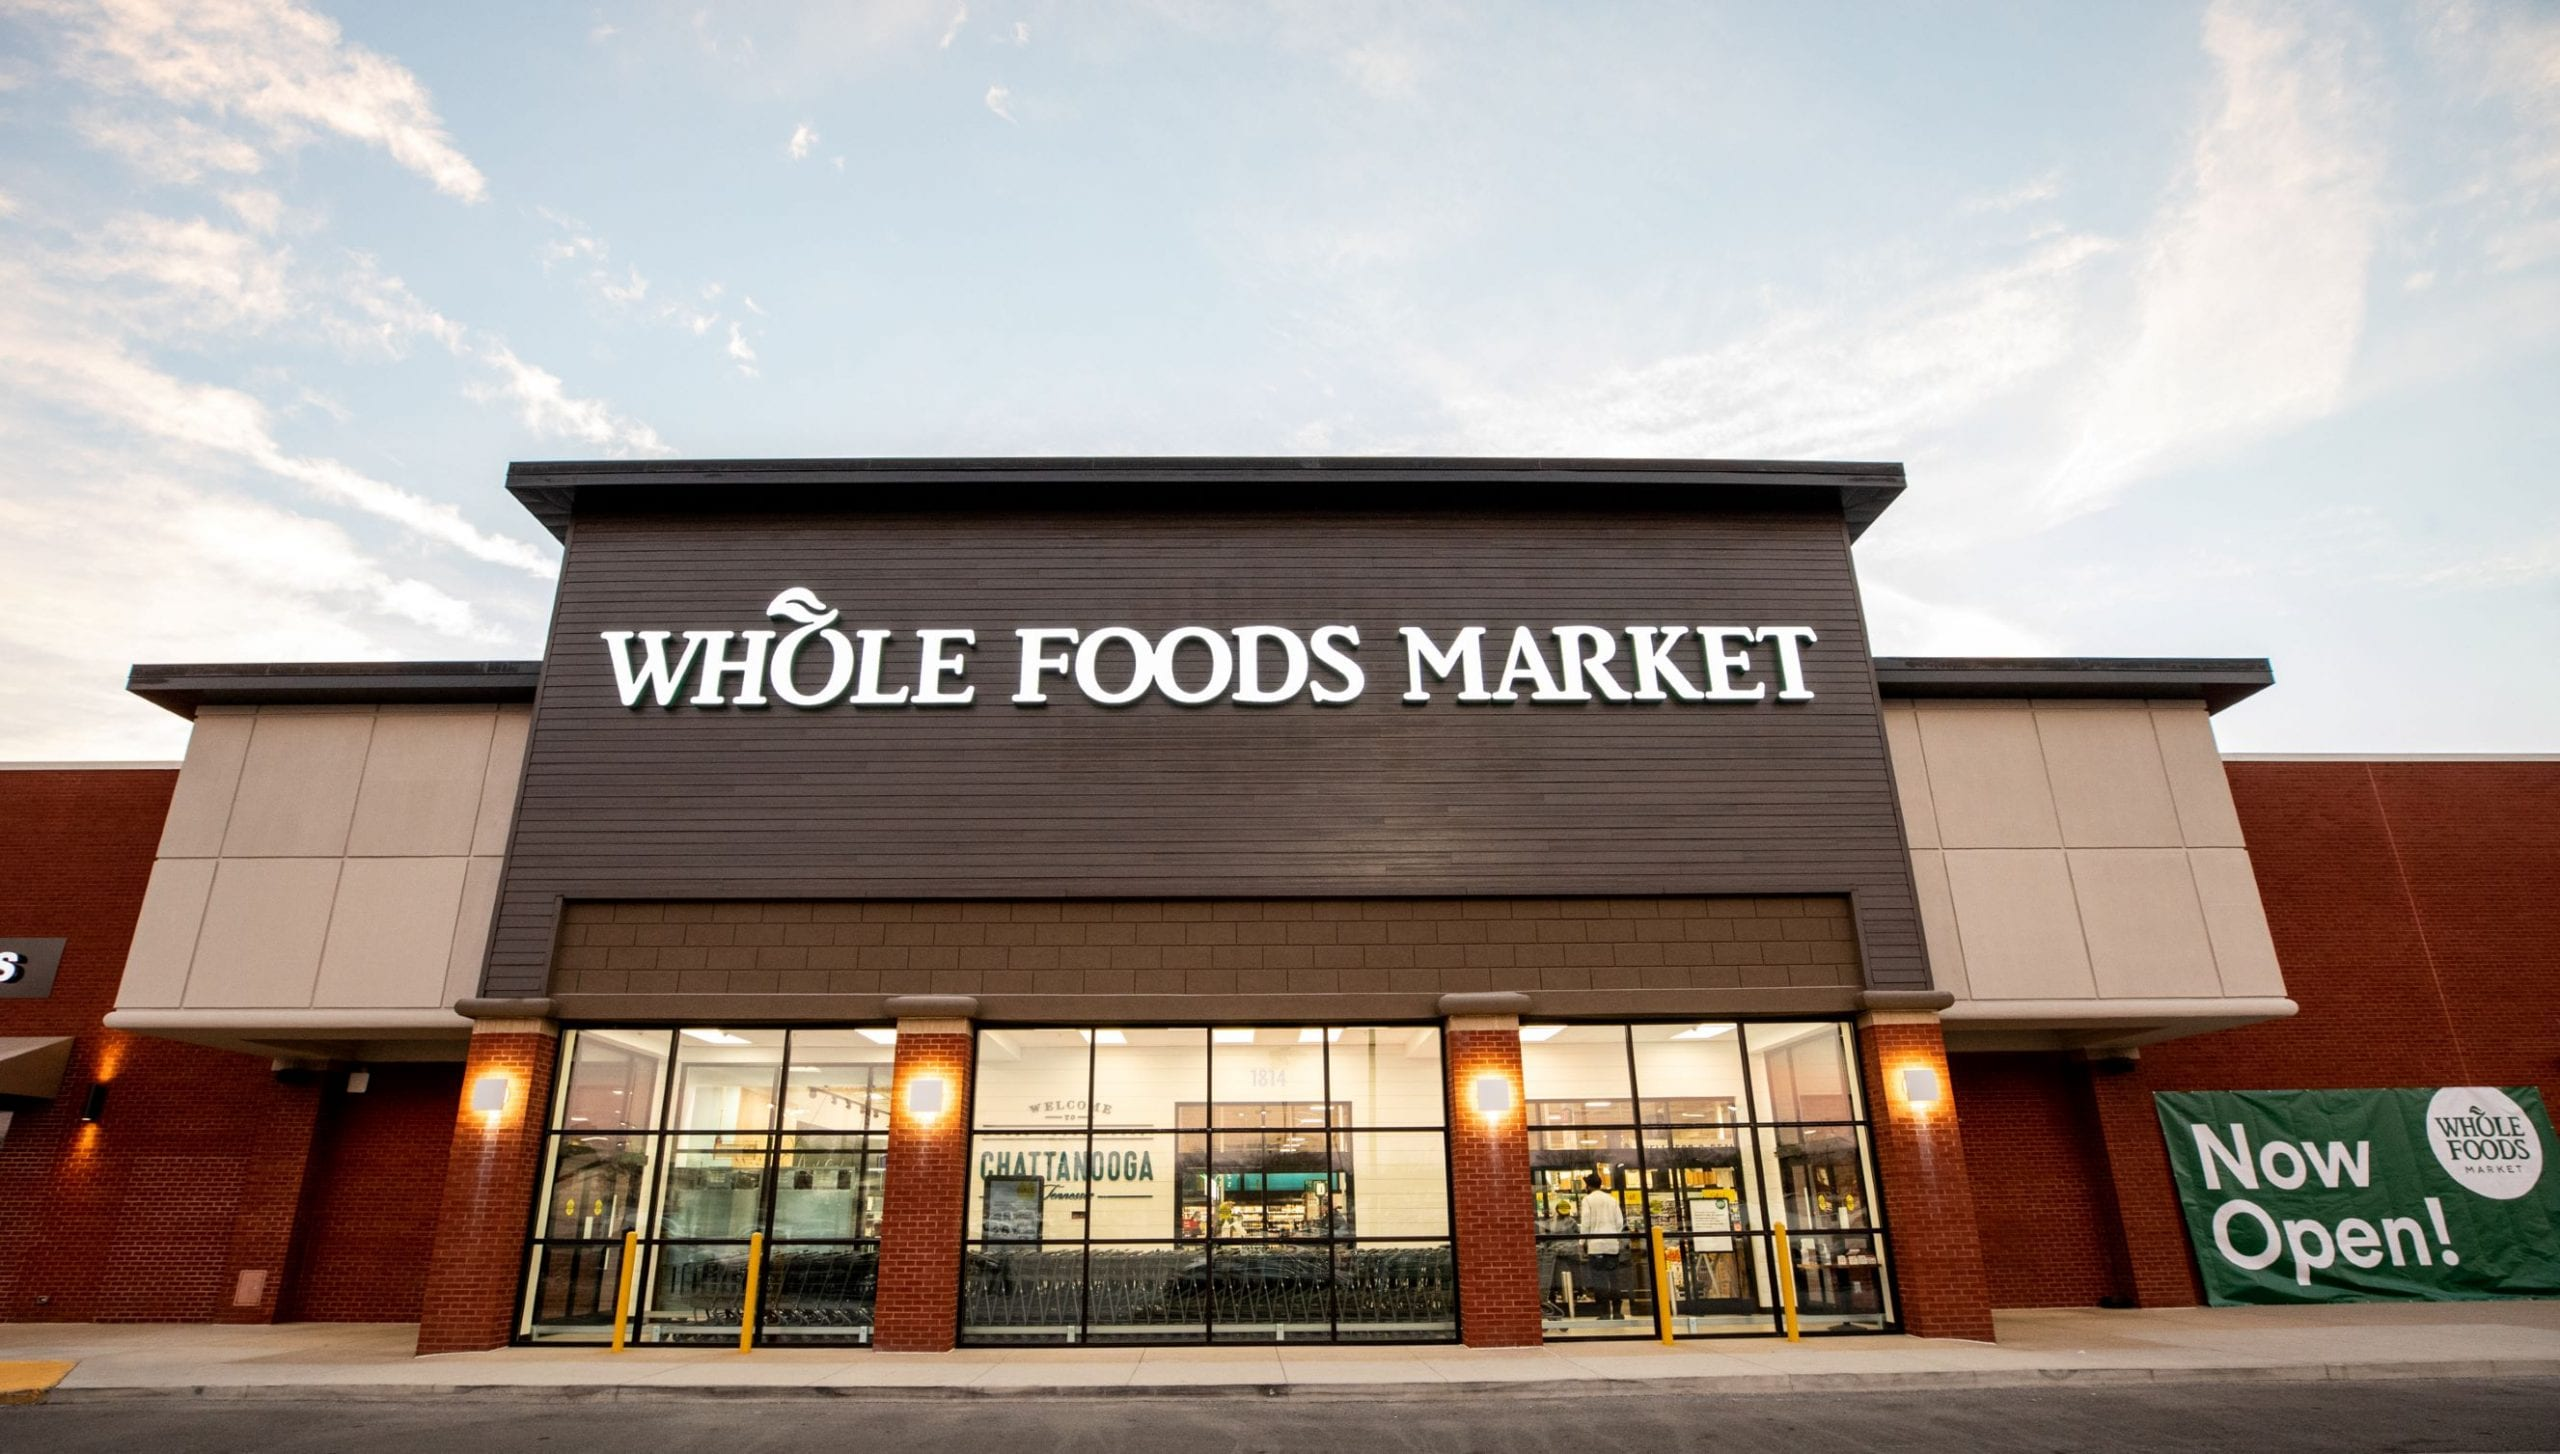 New Whole Foods Market in Chattanooga East now open